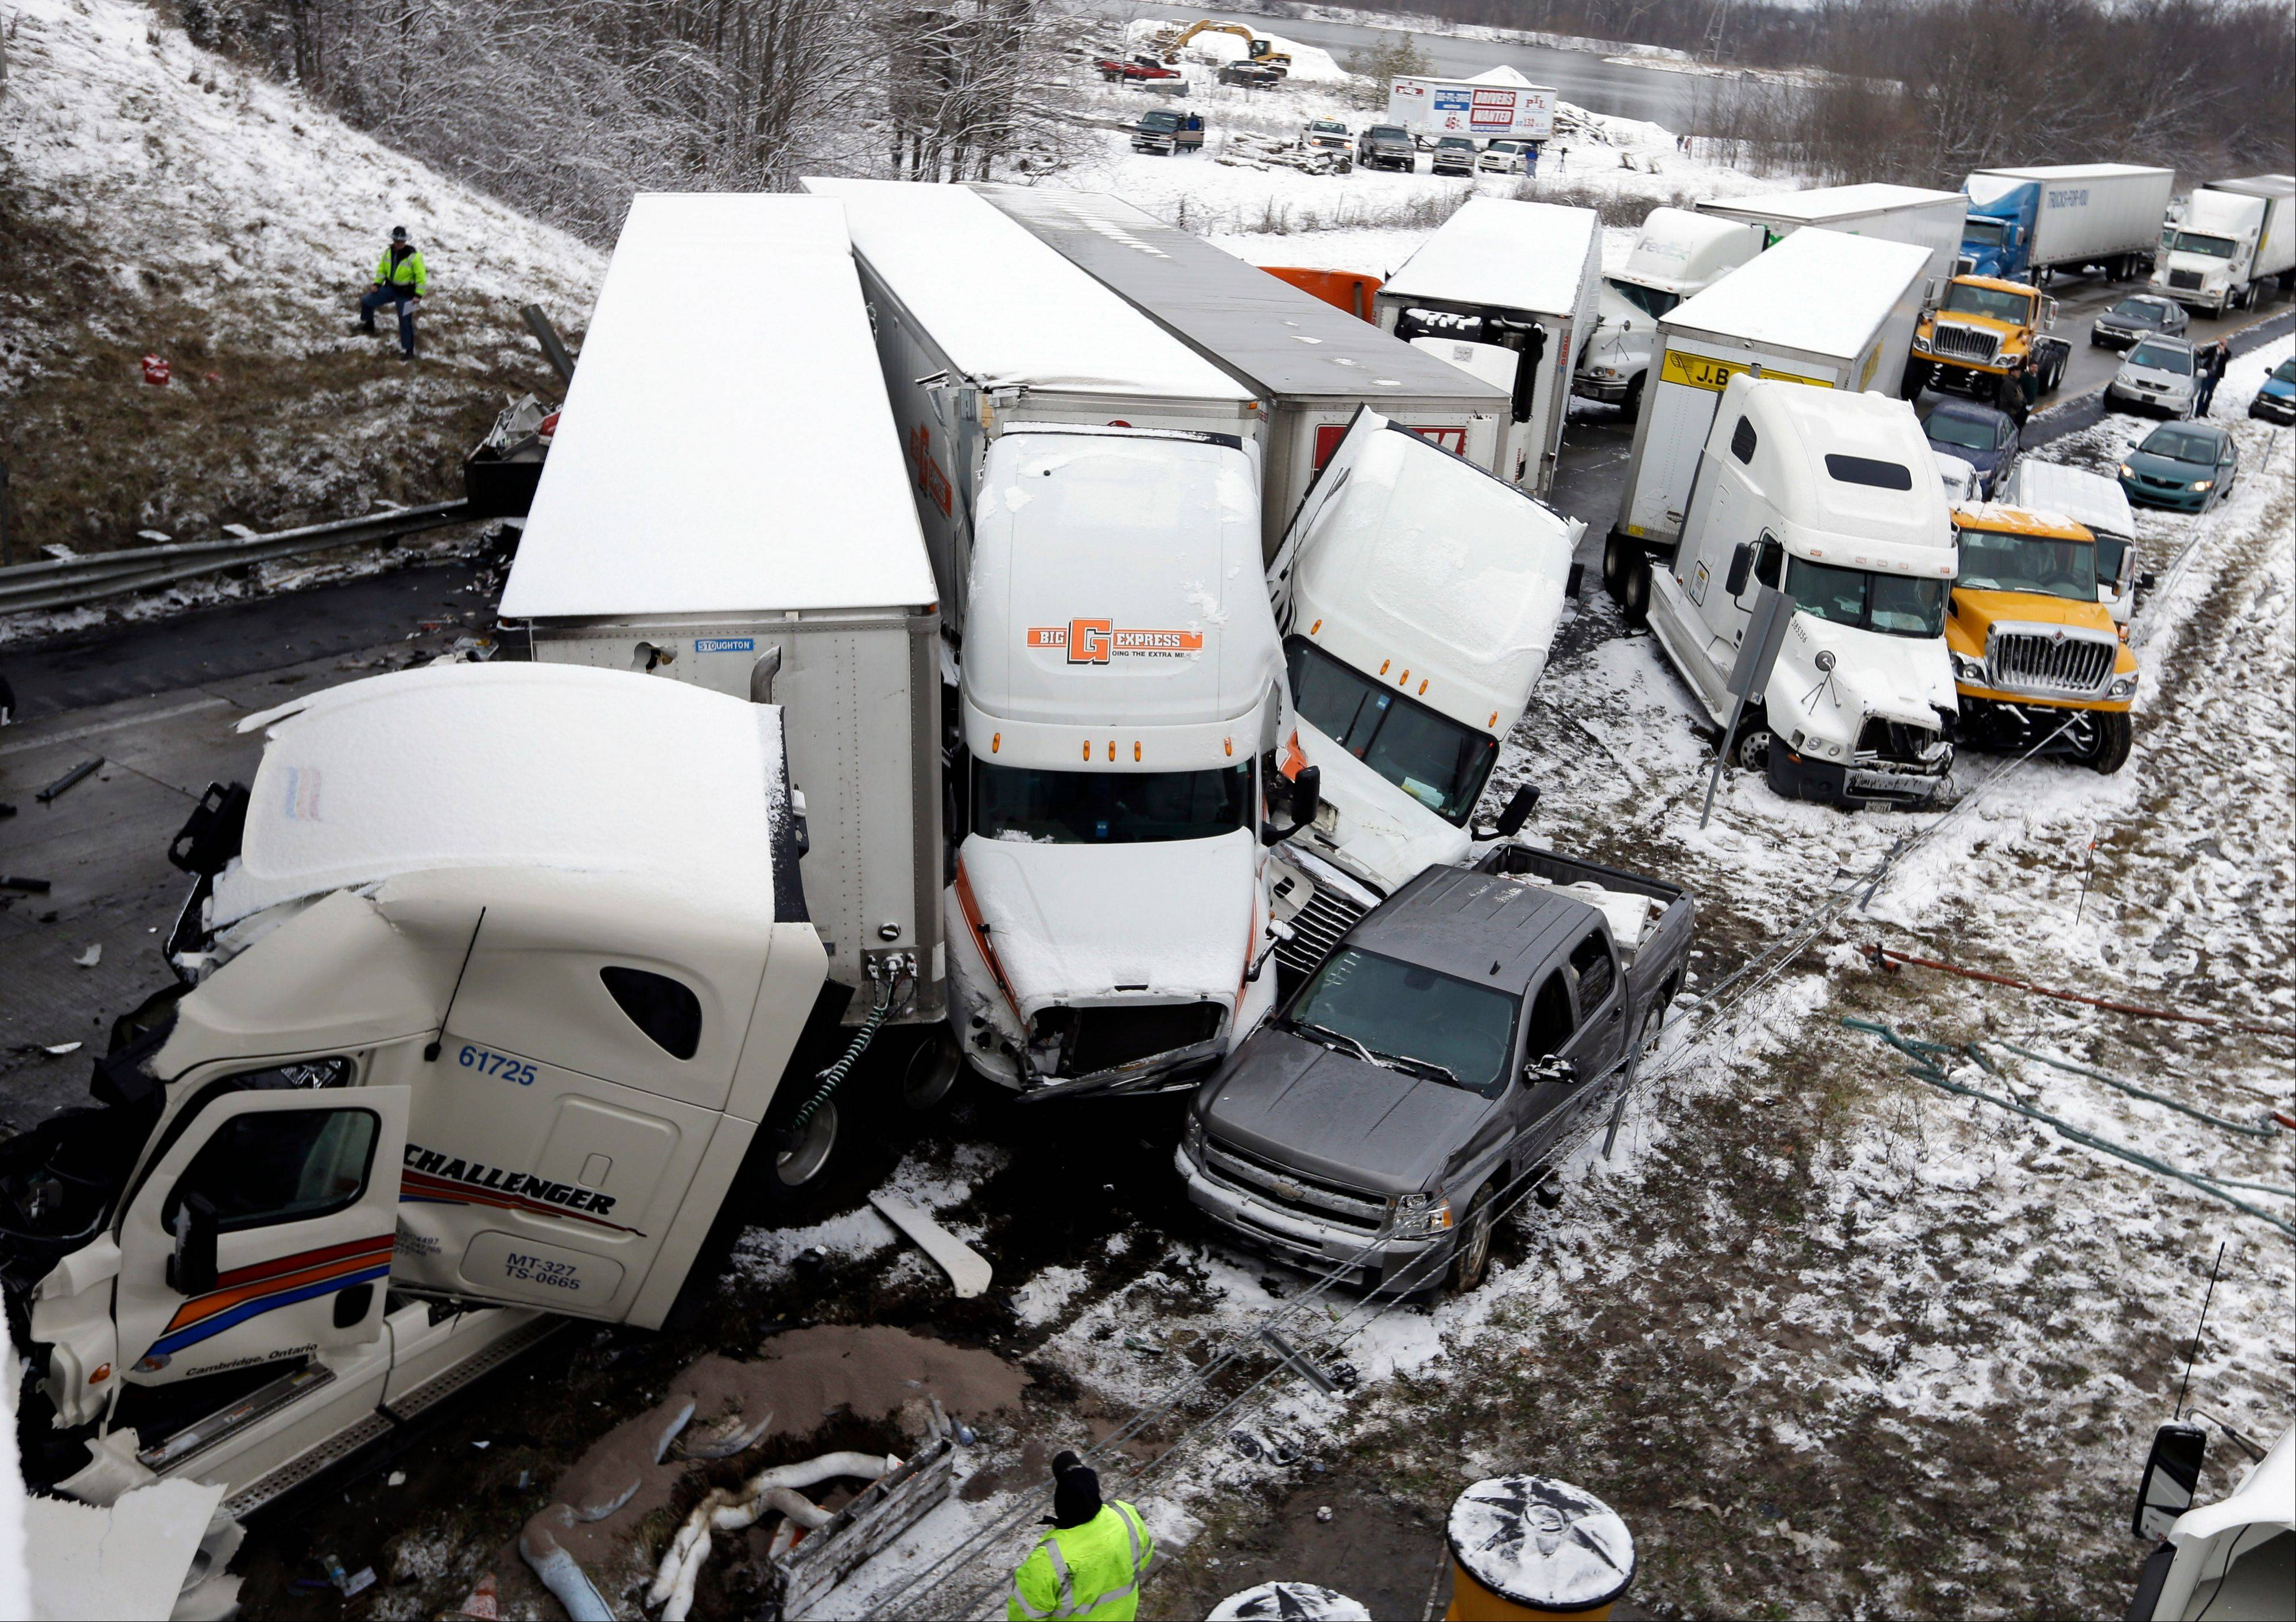 Police and emergency personal work the scene of a pileup involving more than 30 vehicles Thursday on Interstate 70 in Plainfield, Ind. The crash closed the interstate in both directions.